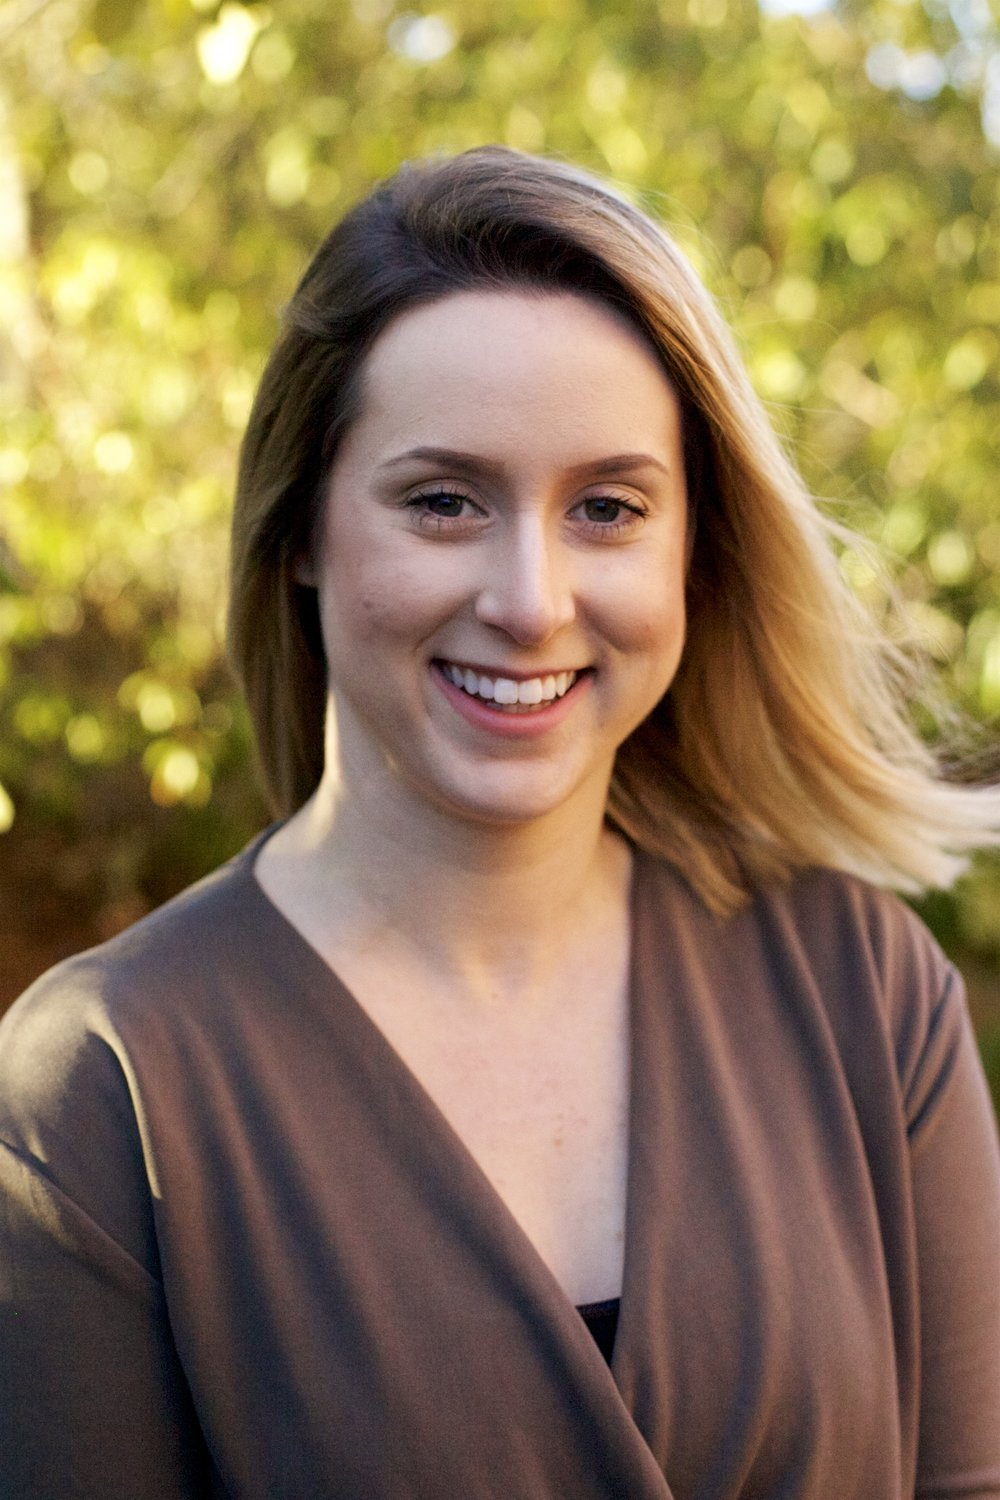 Kellyn McCullough, MA, LMFT, therapist    ∙  Adults and Adolescents (12+)  ∙  Couples  ∙  Families  ∙  Depression  ∙ EMDR   ∙  Anxiety  ∙  Trauma  ∙ Eating Disorders ∙ LGBTQ ∙ Emerging Adults ∙ Self-image/ Self-Esteem   ∙ Work Stress   ∙ Co-occurring disorders   ∙ Adjustment Issues/Life Transitions   ∙ Self Harm